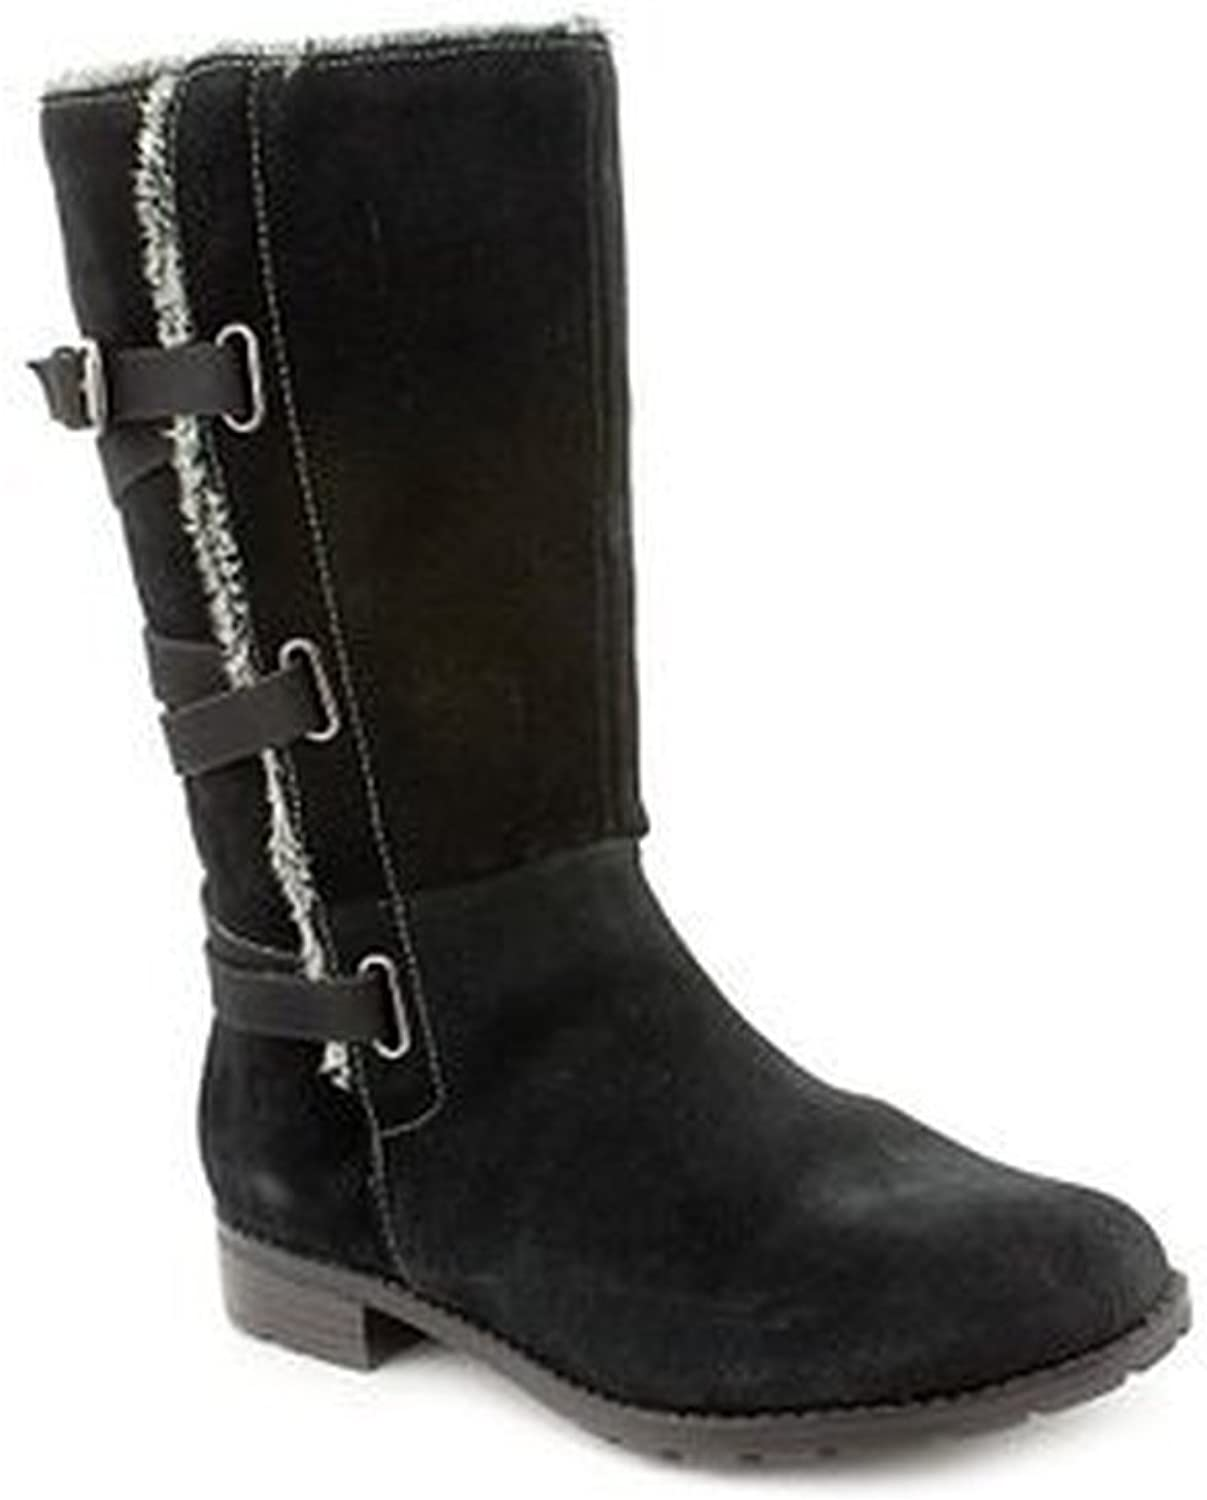 ISO Mischa Womens Size 7.5 Black Suede Fashion Mid-Calf Boots